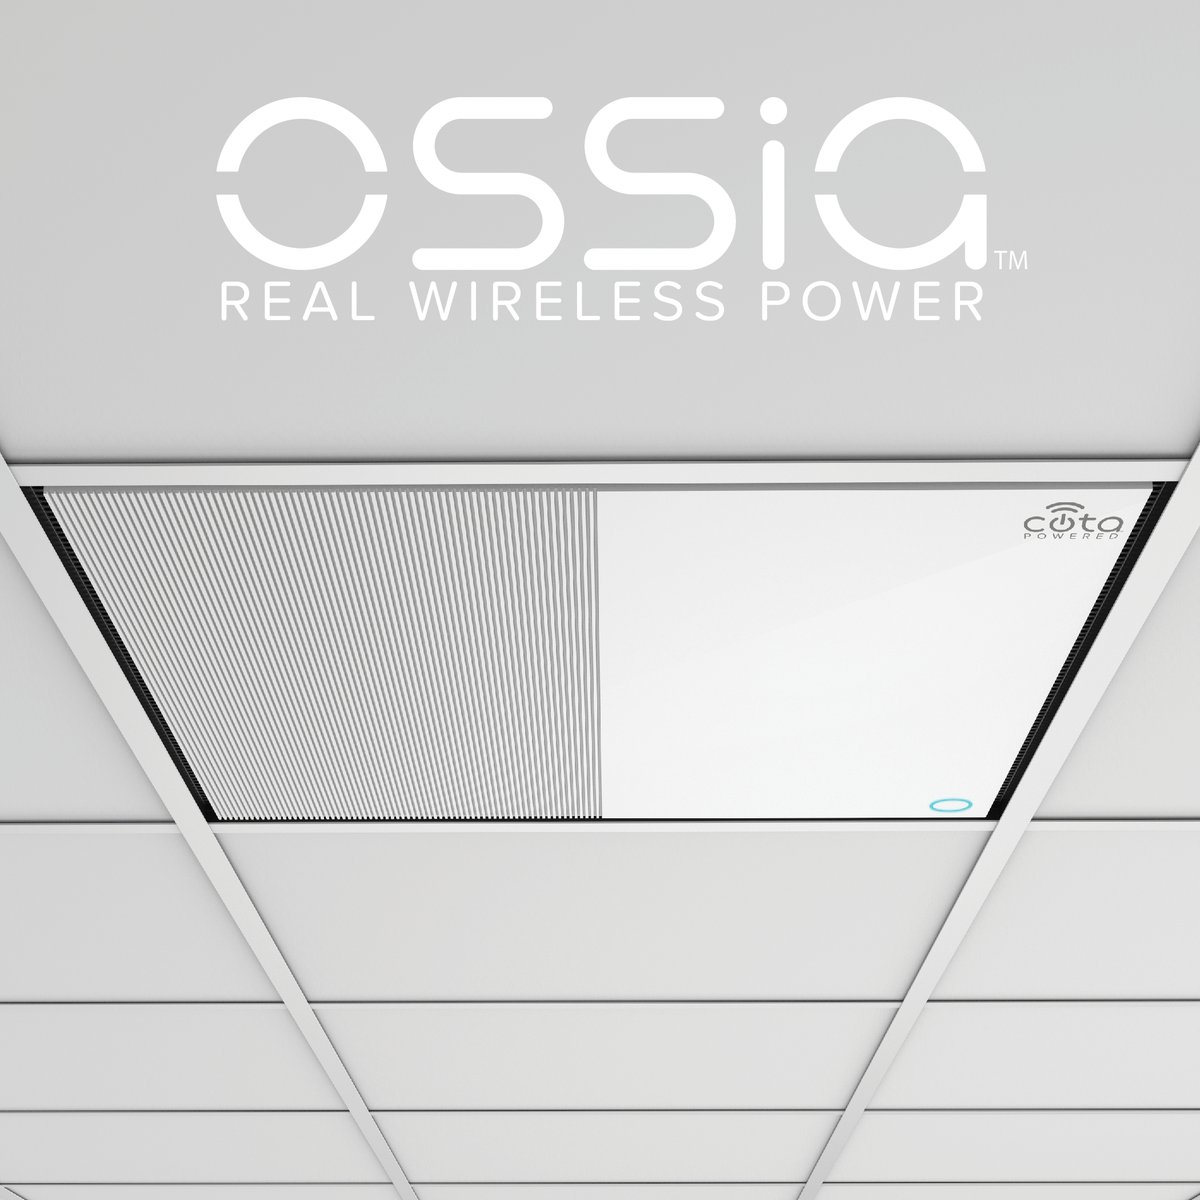 Ossia's #technology powers devices #wirelessly without cords and #charging pads. @inversedotcom explains how:  http:// bit.ly/2w95kKn  &nbsp;  <br>http://pic.twitter.com/u6S2U79ORP